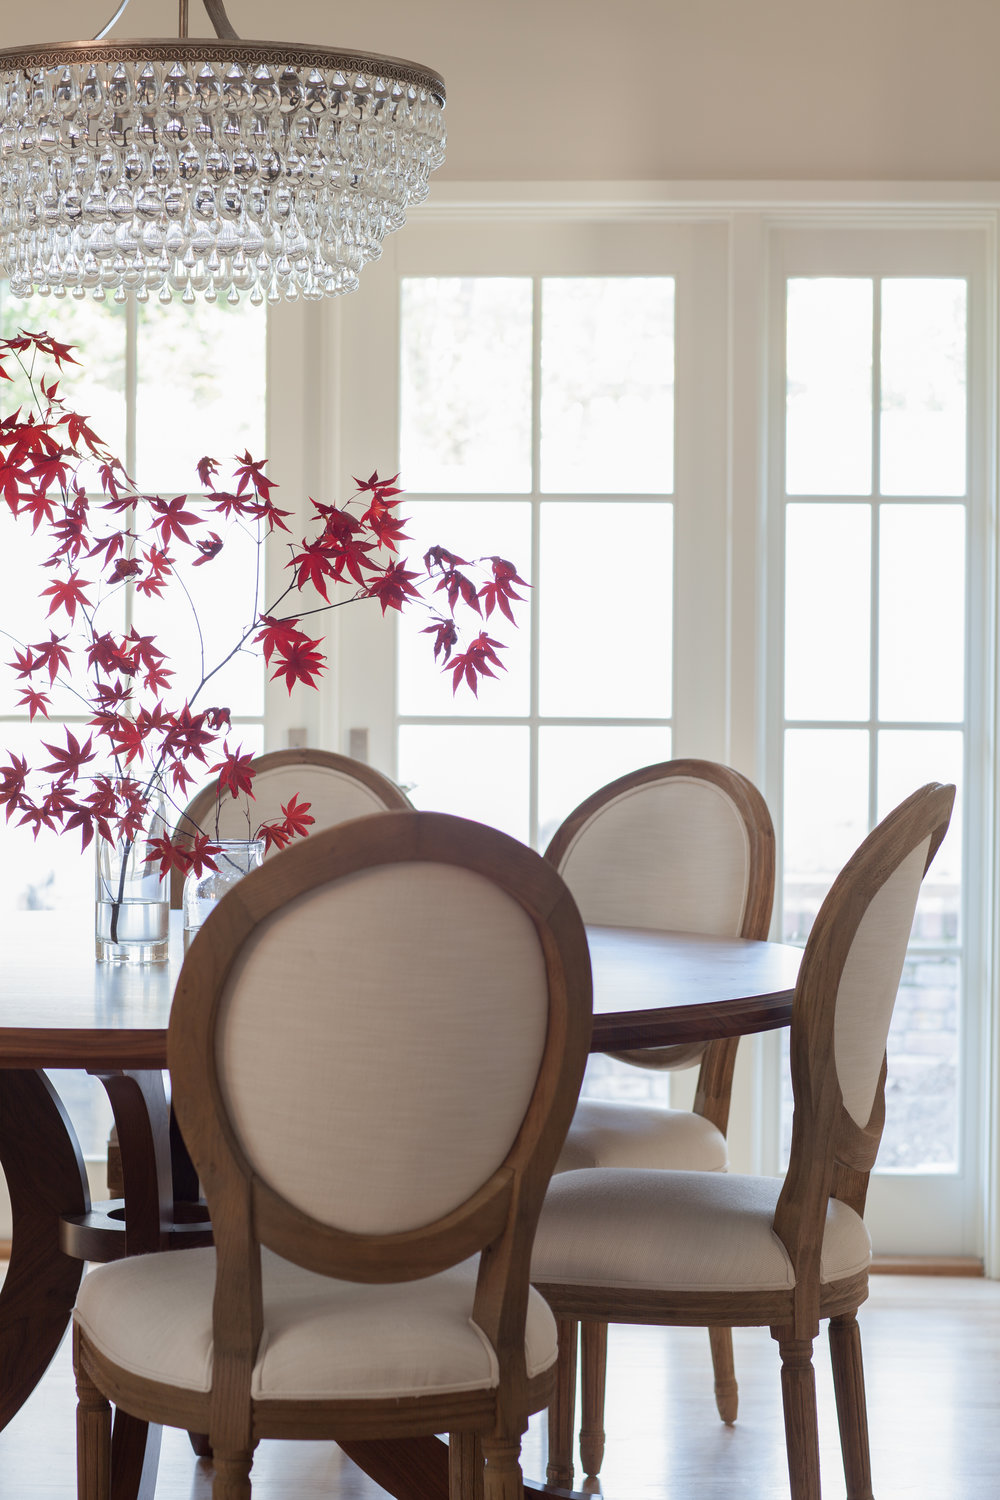 megan bachmann interiors classic dining room closeup.jpg